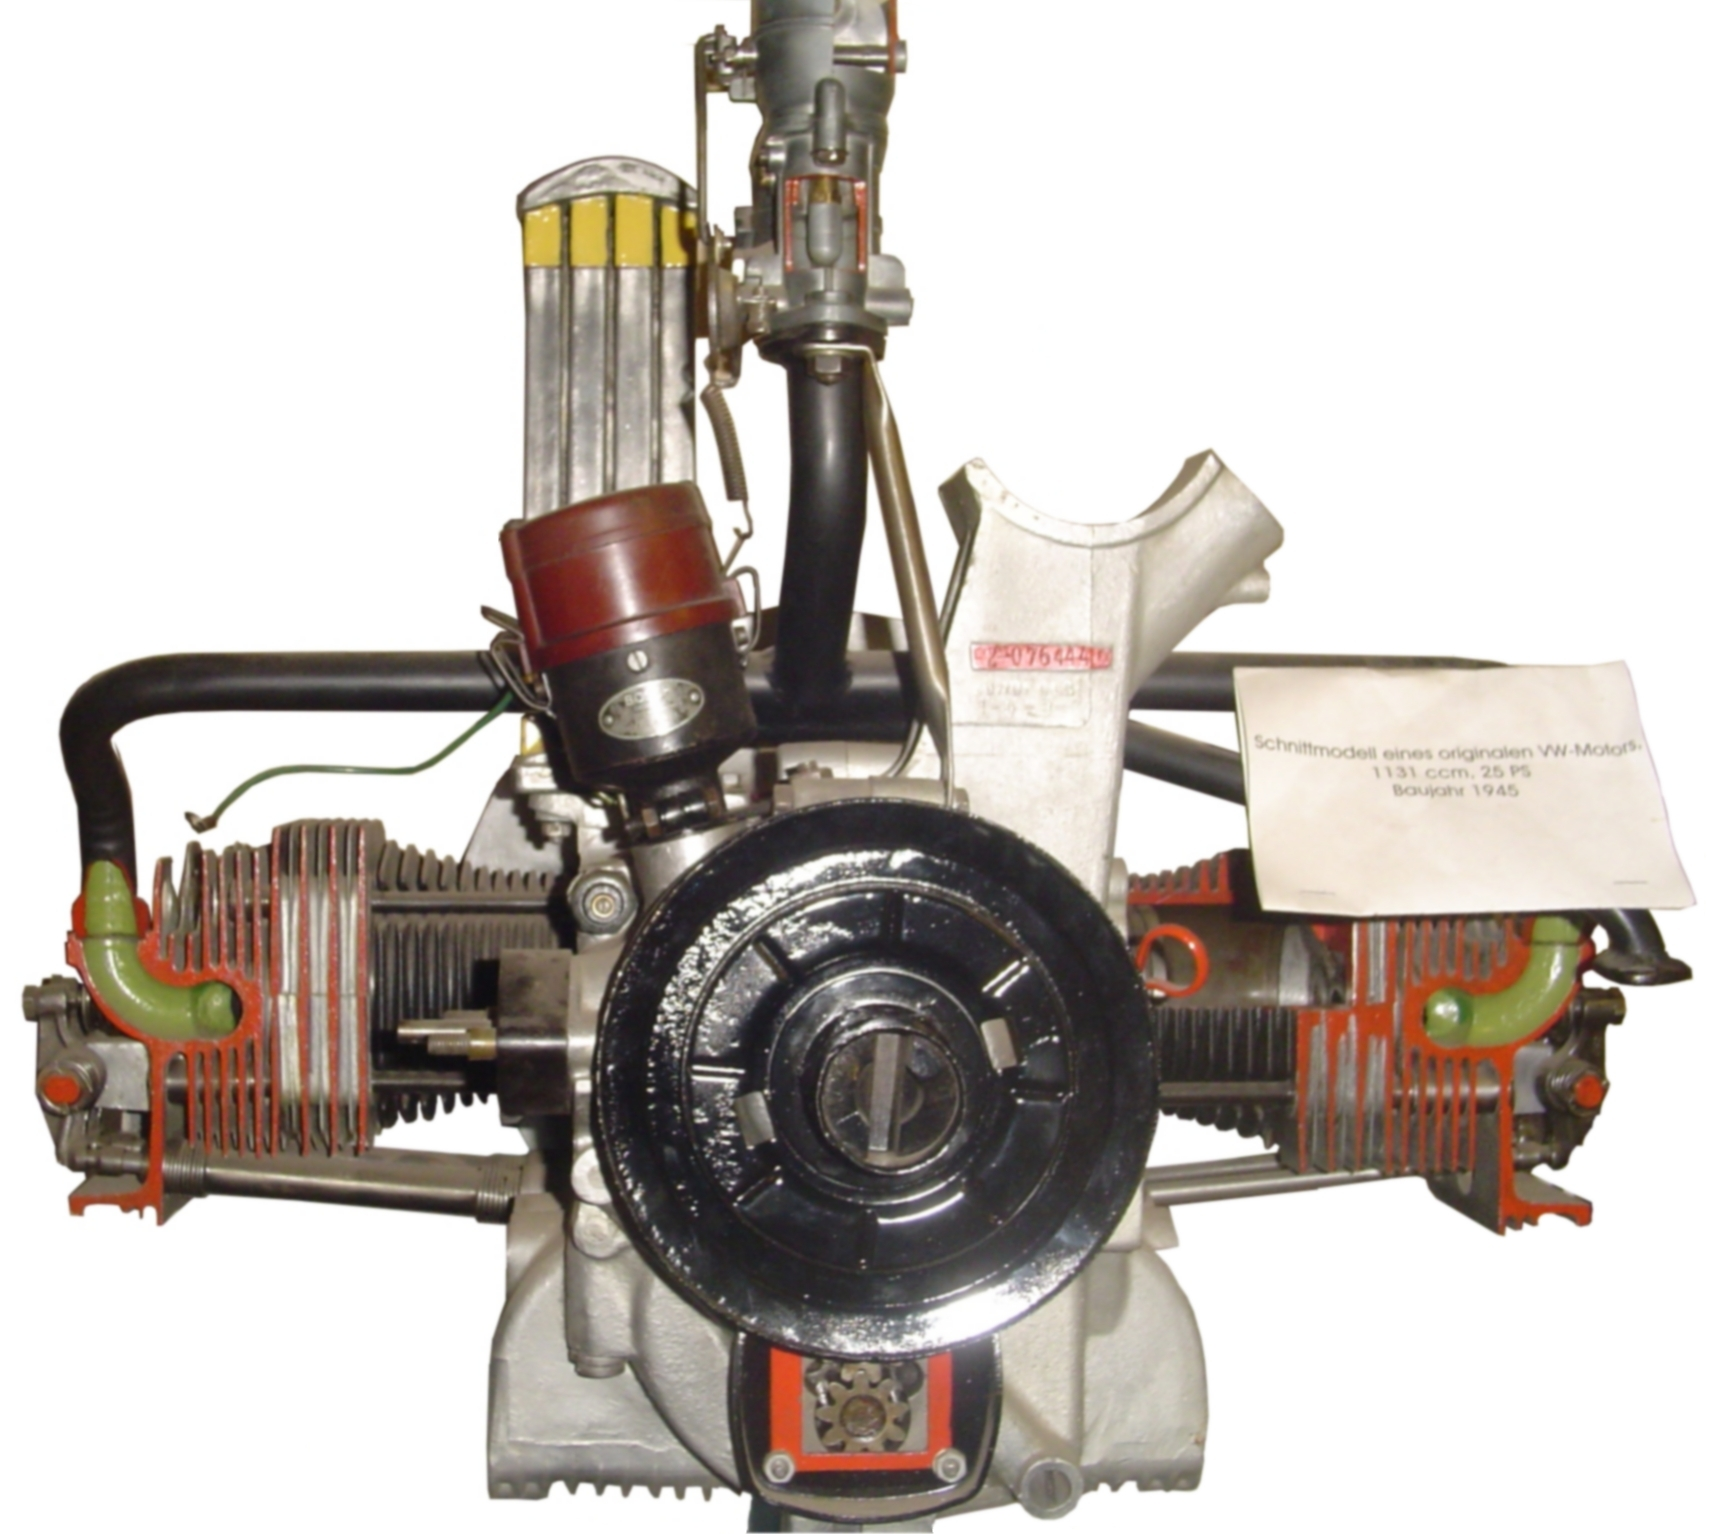 [ZSVE_7041]  Volkswagen air-cooled engine - Wikipedia | 2000cc Vw Engine Diagram |  | Wikipedia